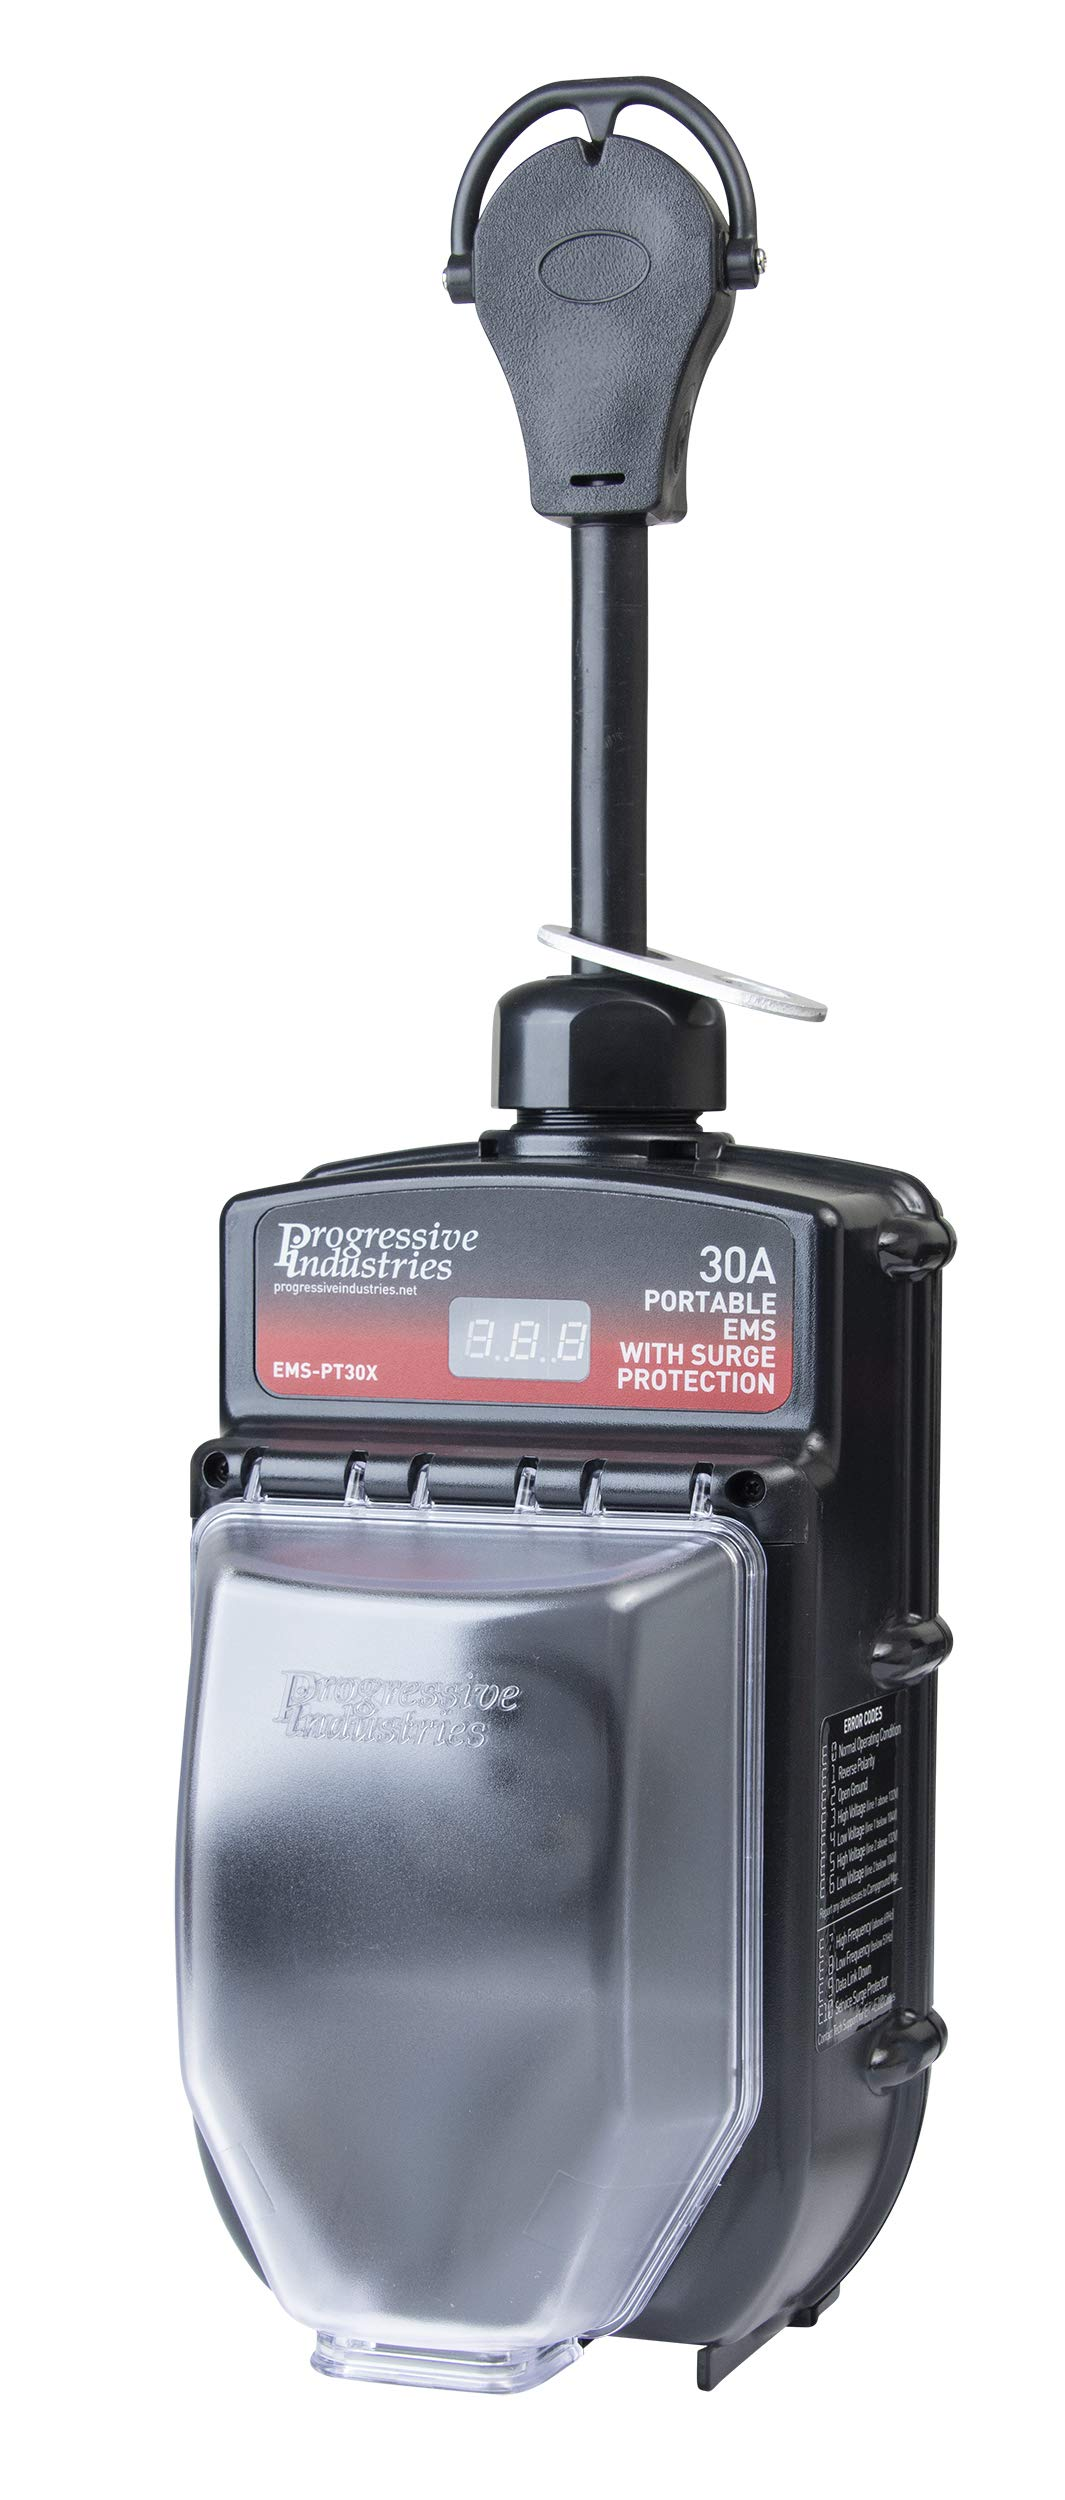 Portable RV Surge Protector Portable EMS-PT30X RV Surge Protector by Progressive Industries